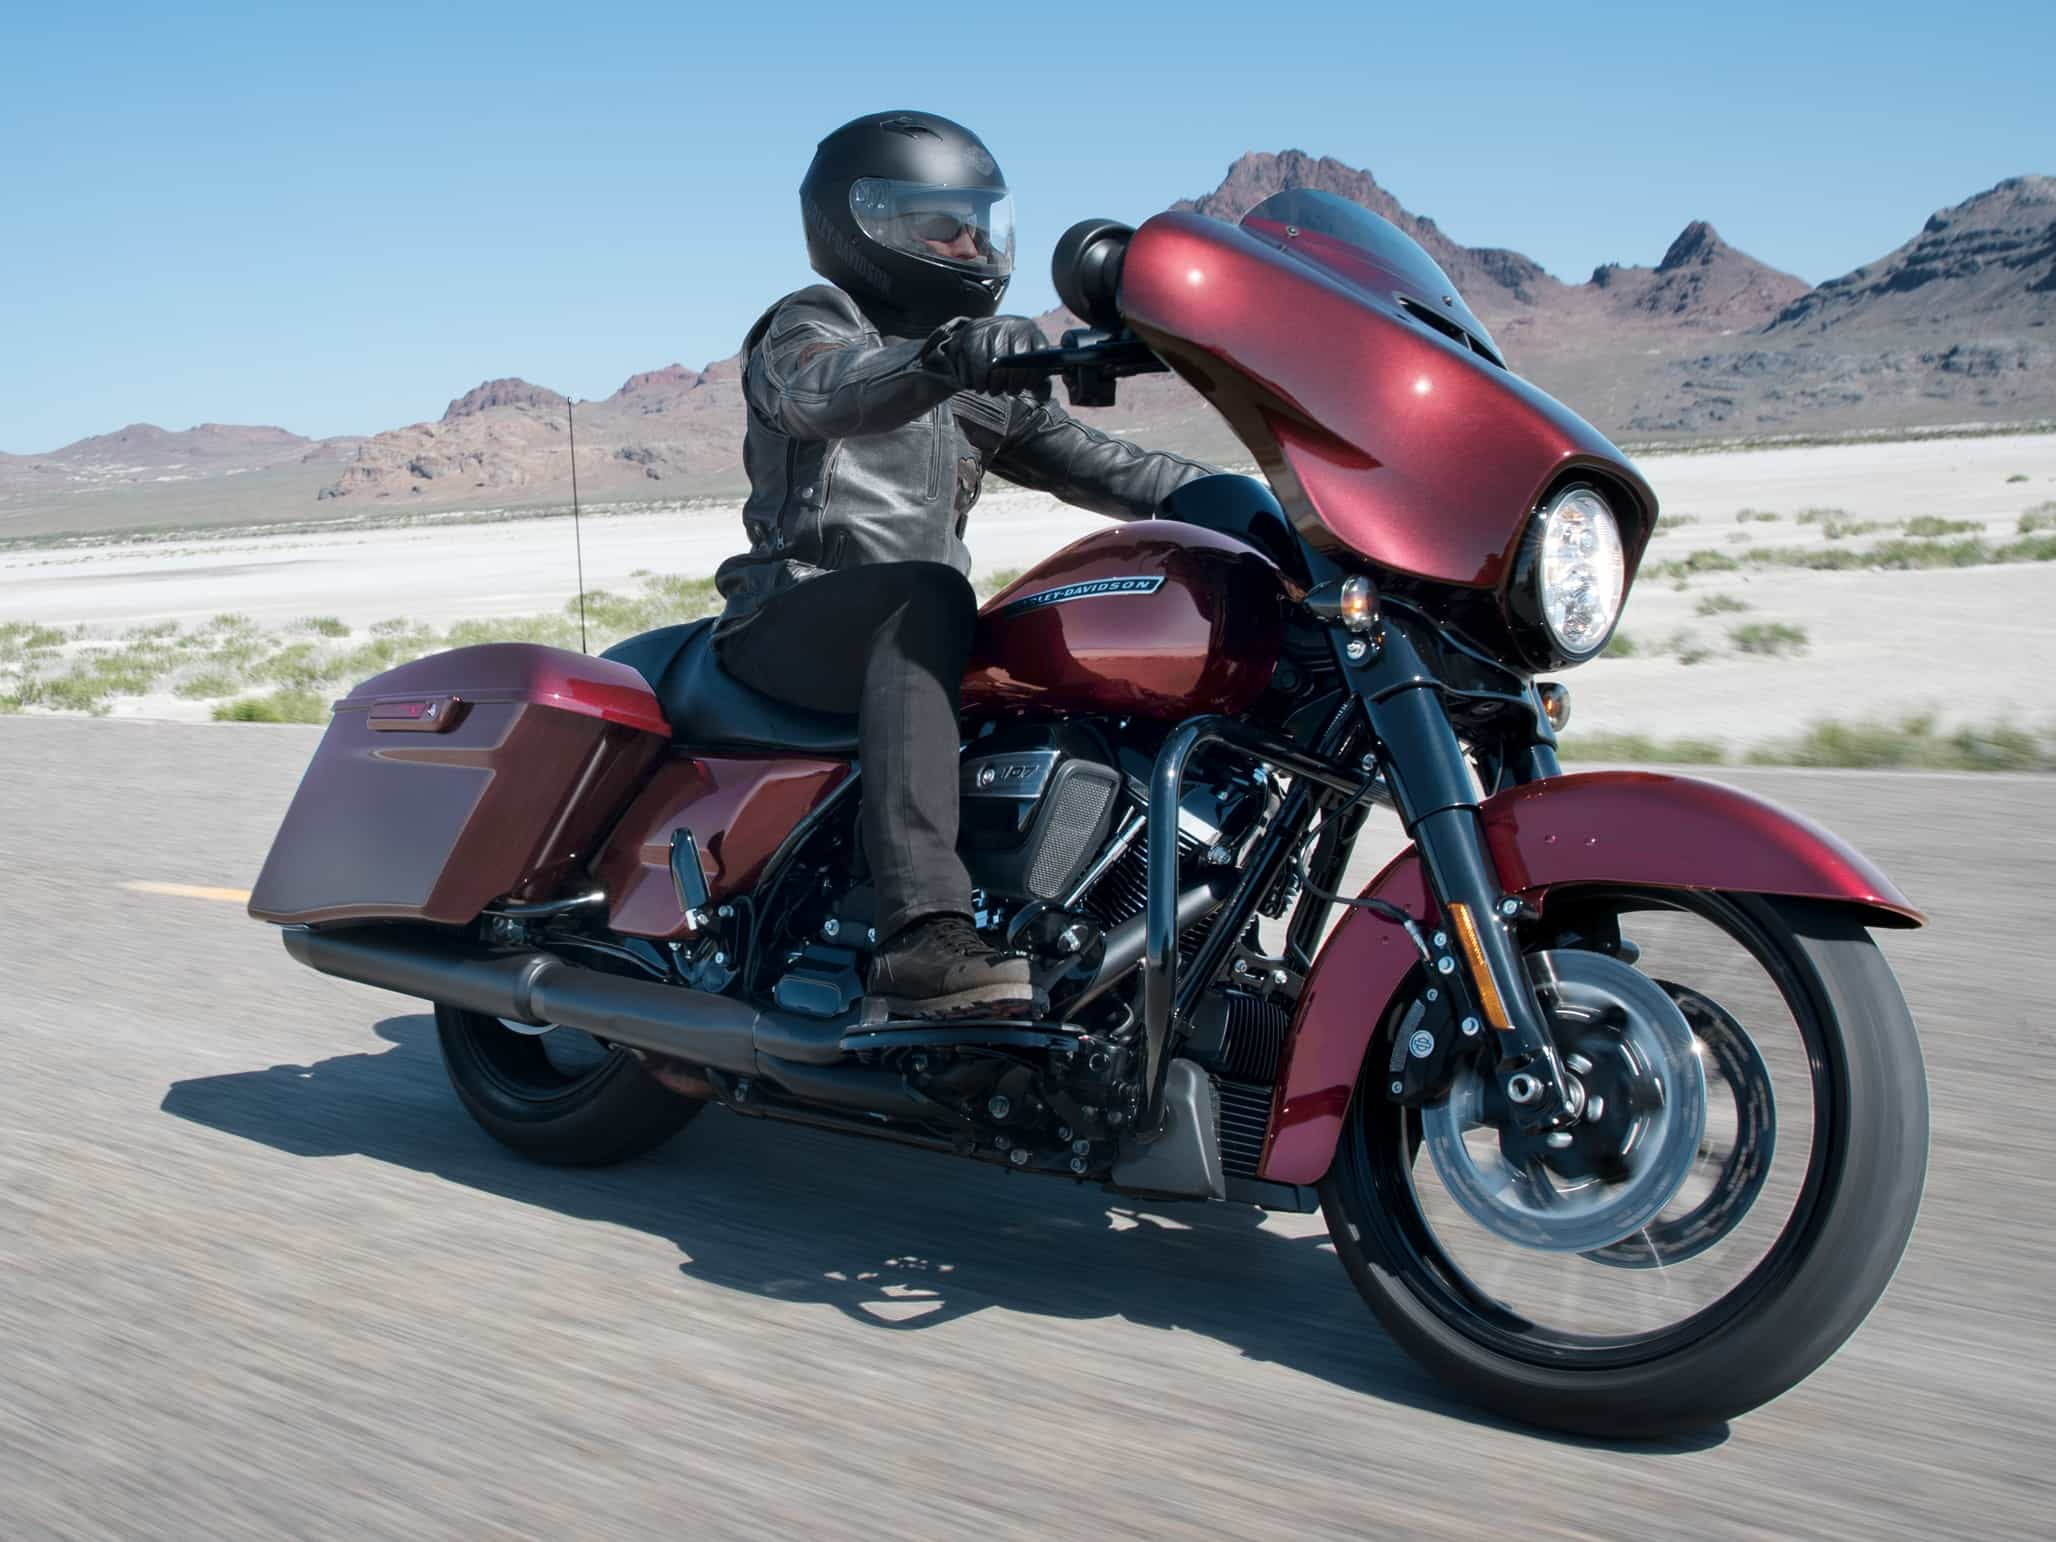 Difference Between Street Glide And Road Glide >> 2018 Street Glide Special | Harley-Davidson USA